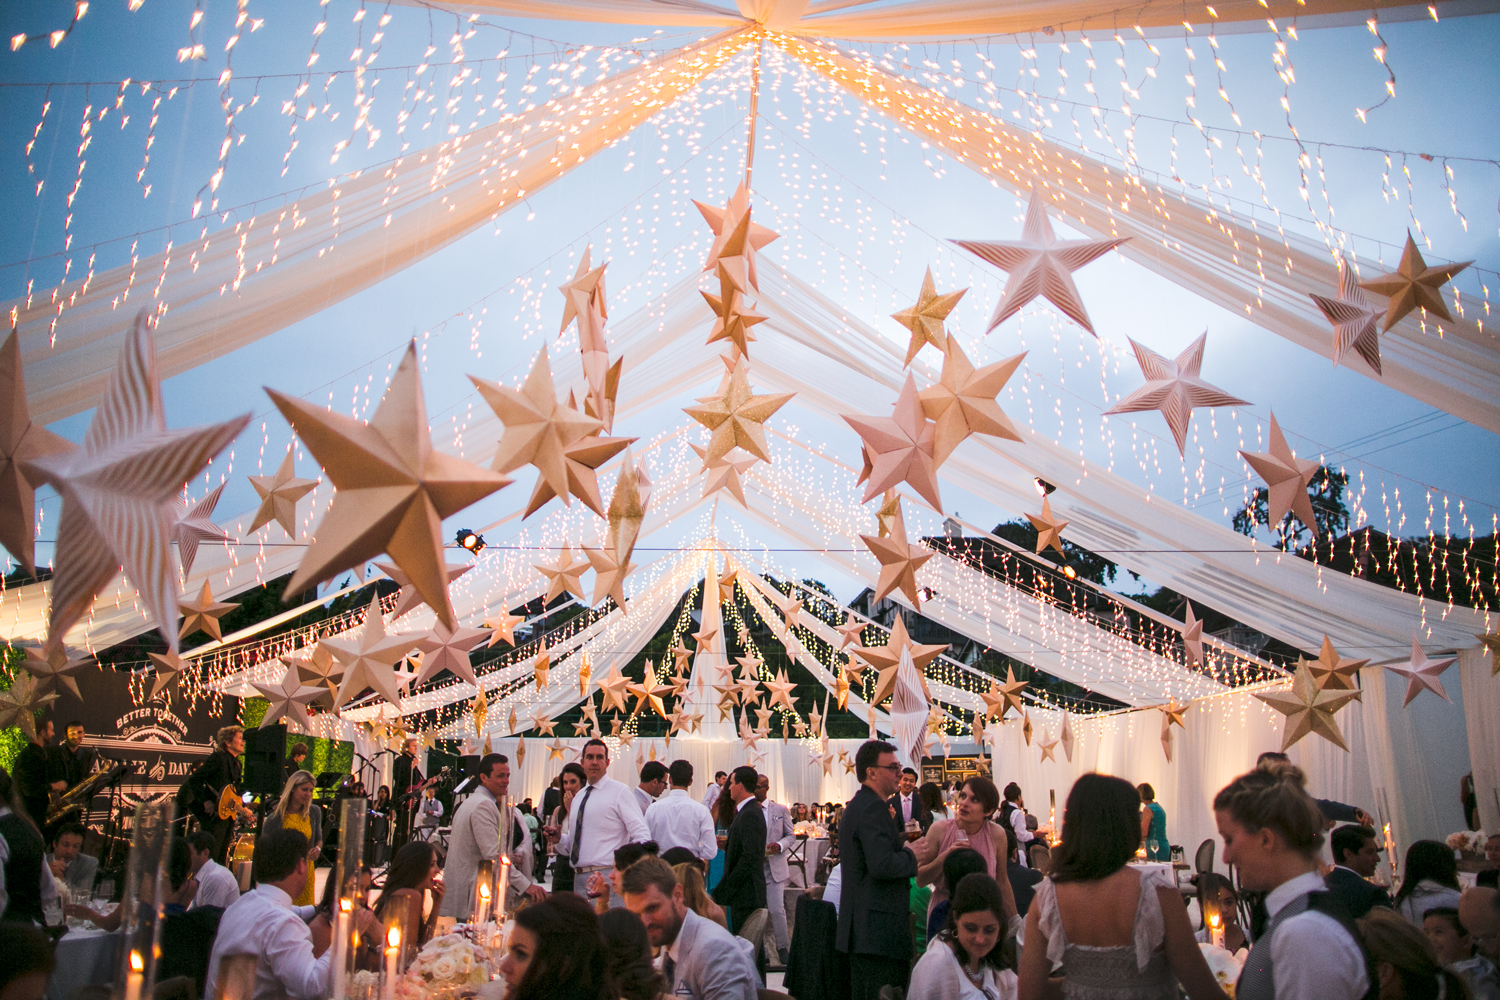 Tents and Twinkly Lights